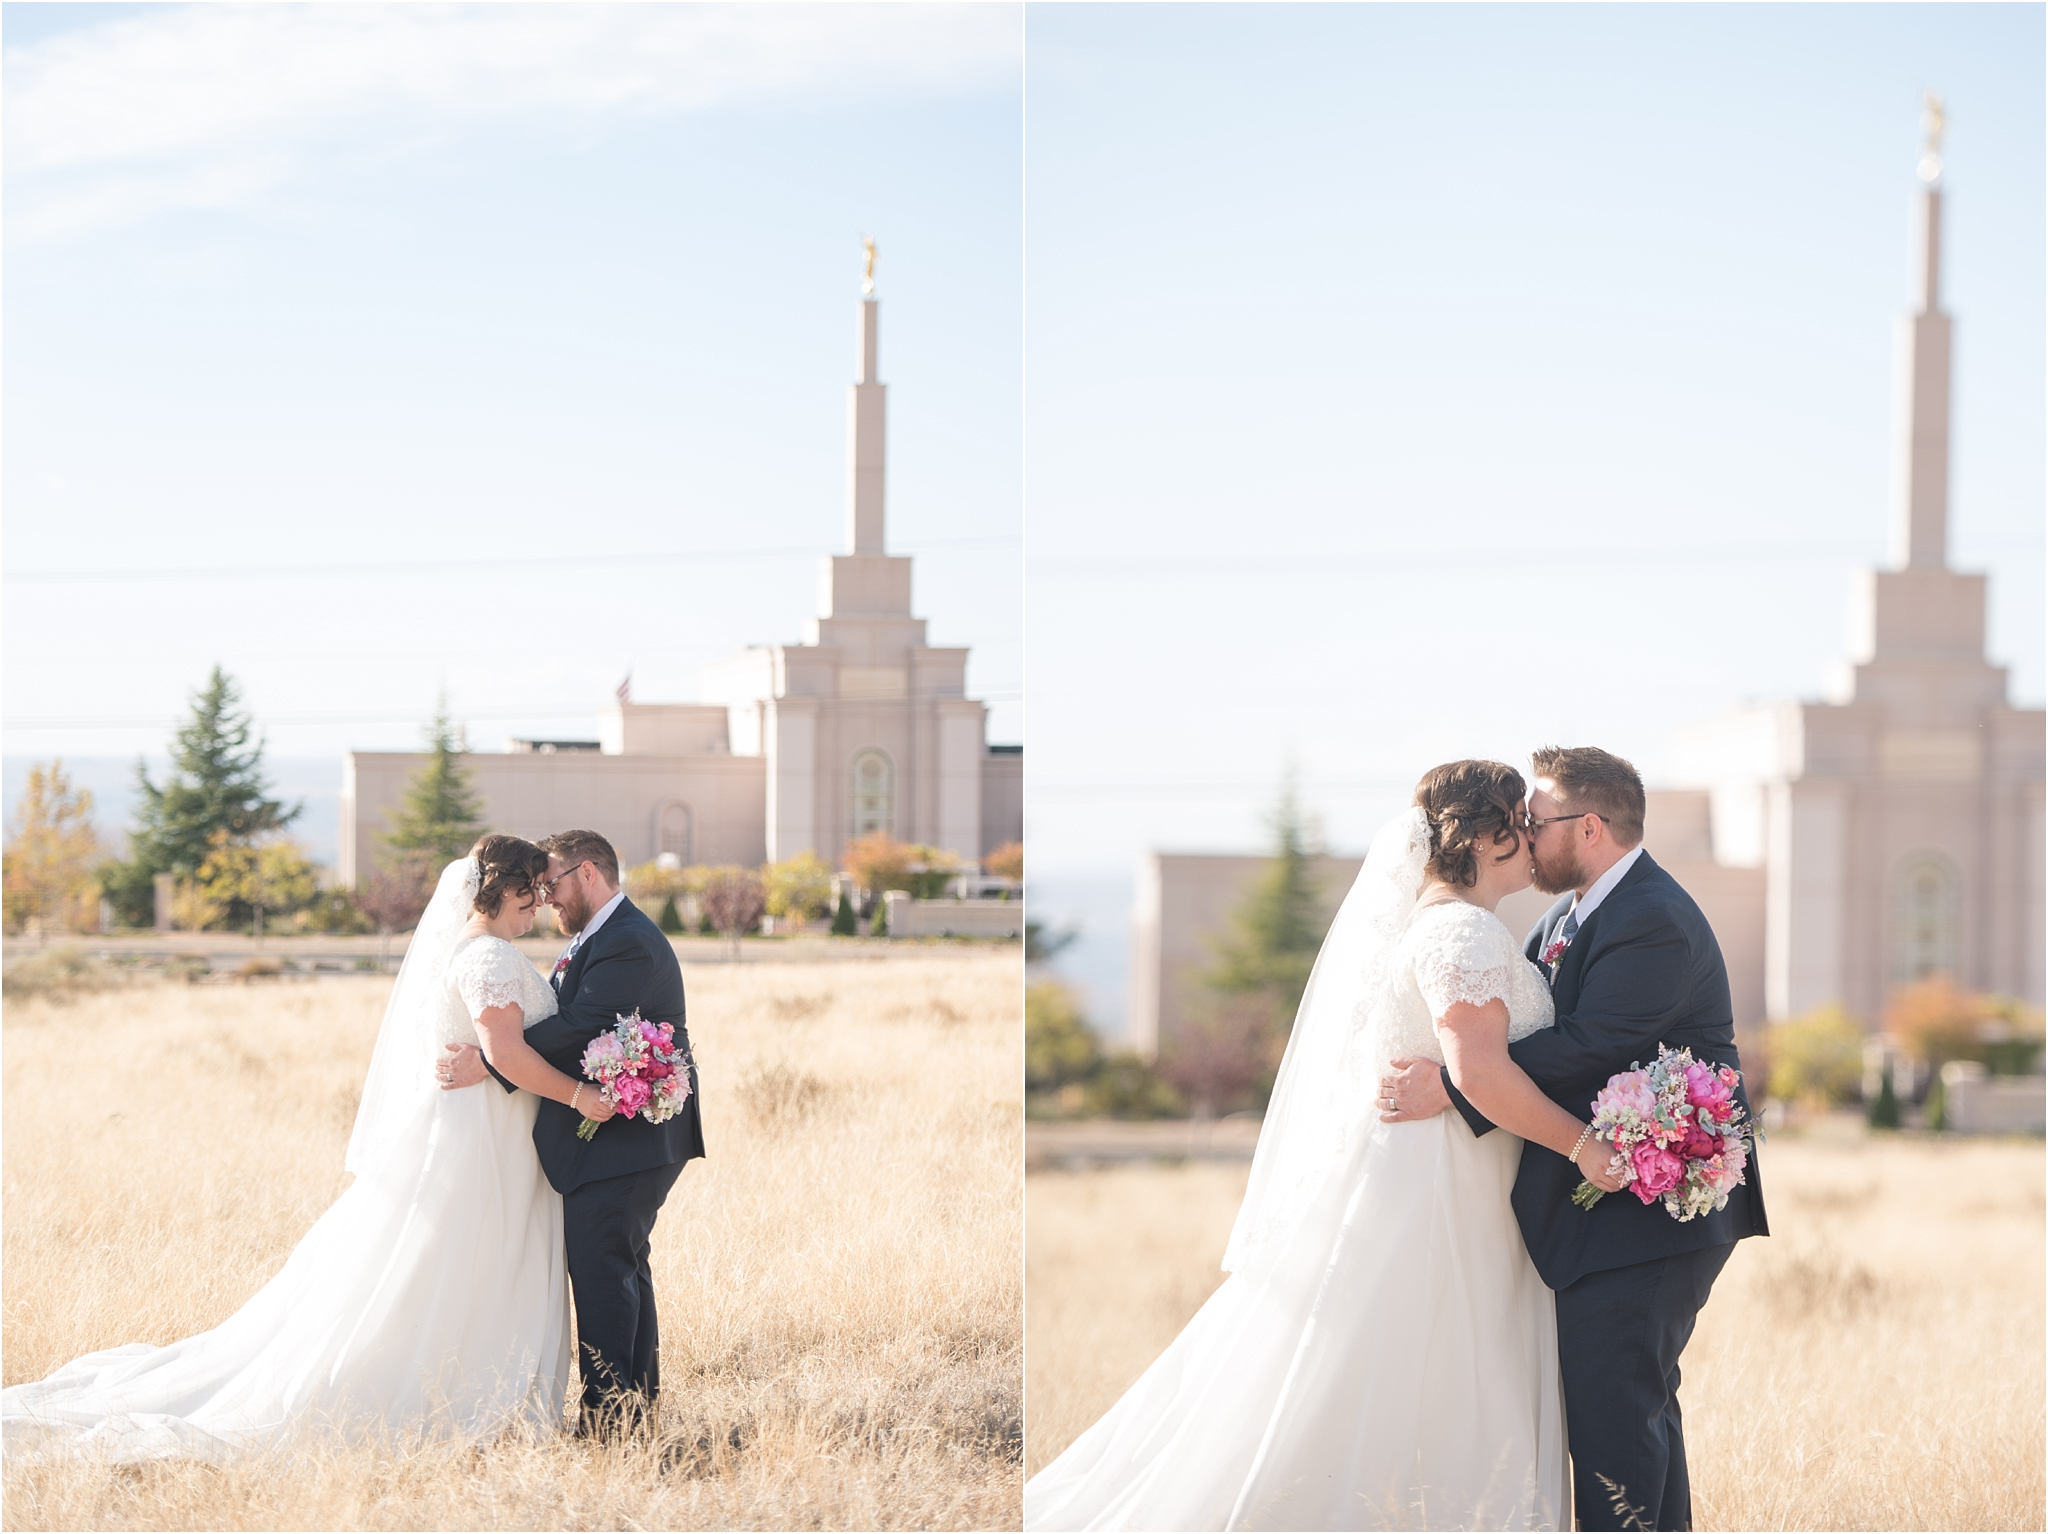 kayla kitts photography - albuquerque wedding photographer - hairpins and scissors - a cake odyssey - new mexico wedding photographer_0106.jpg